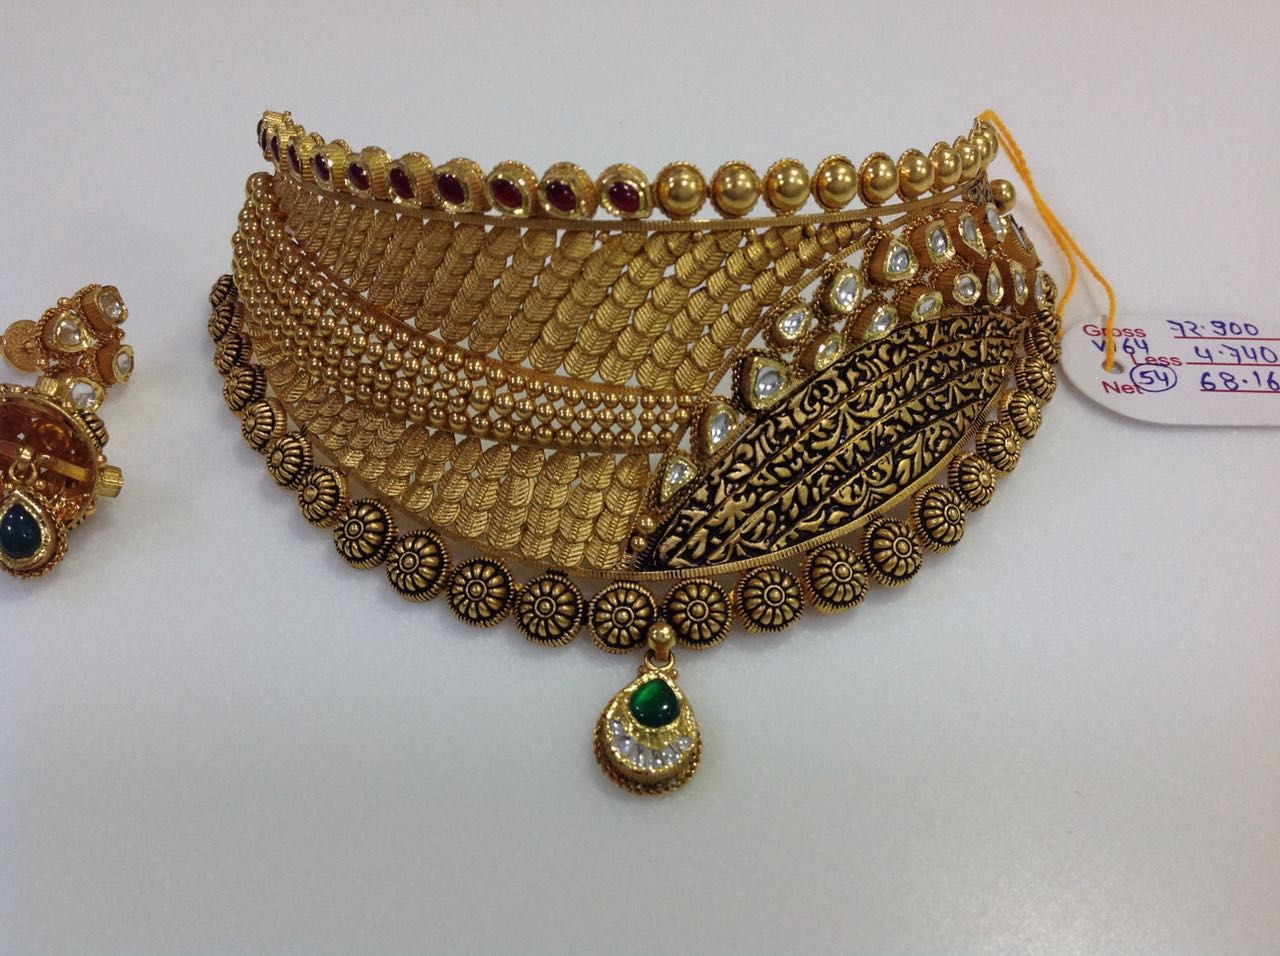 Necklace | Aentik rajvadi | Pinterest | Gold jewellery, Gold and ...